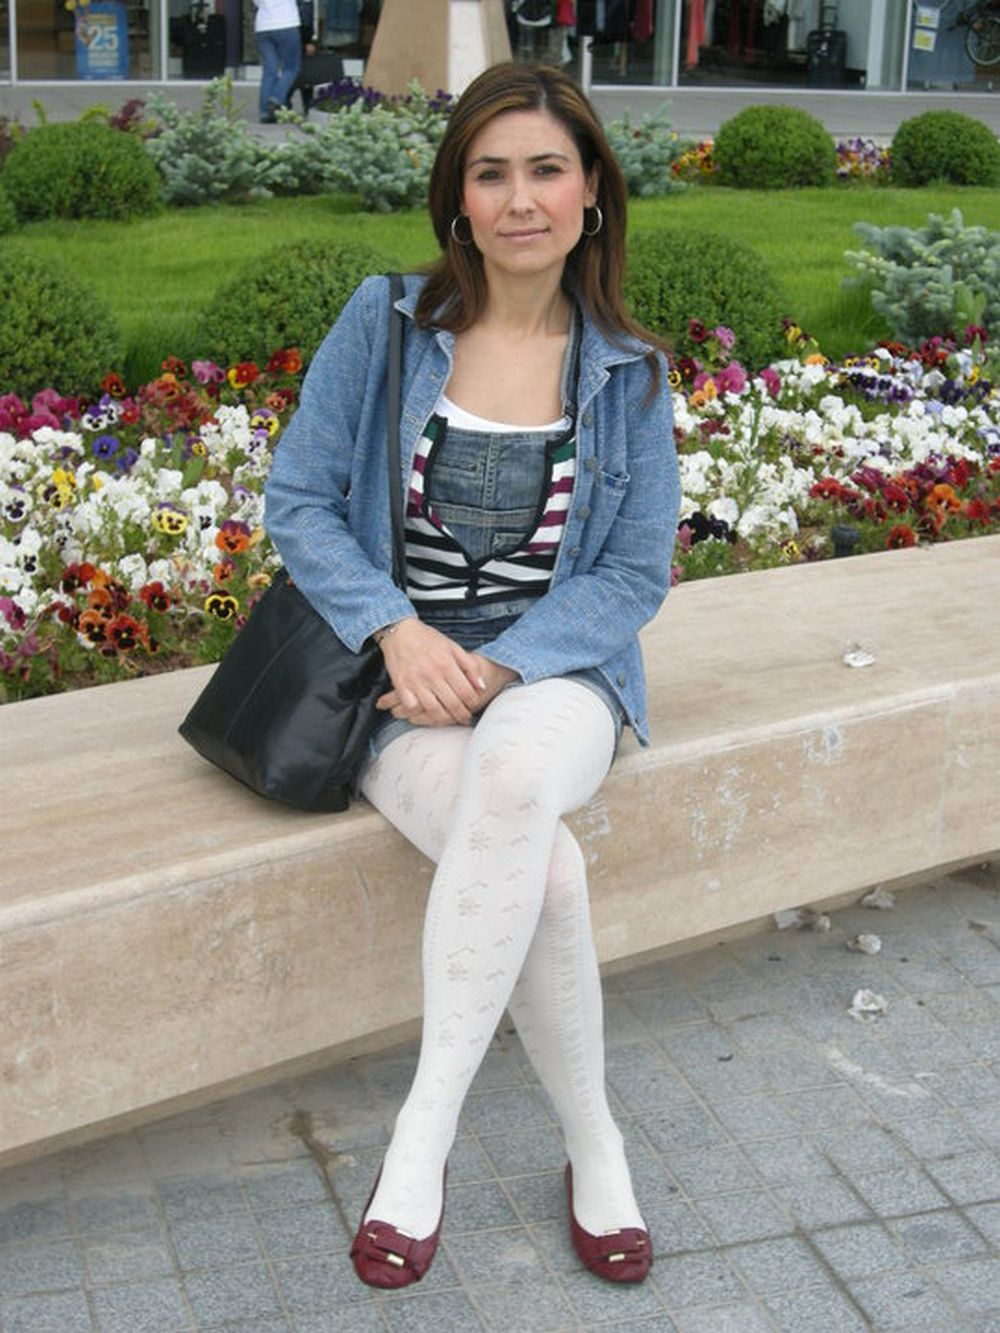 White jeans and pantyhose